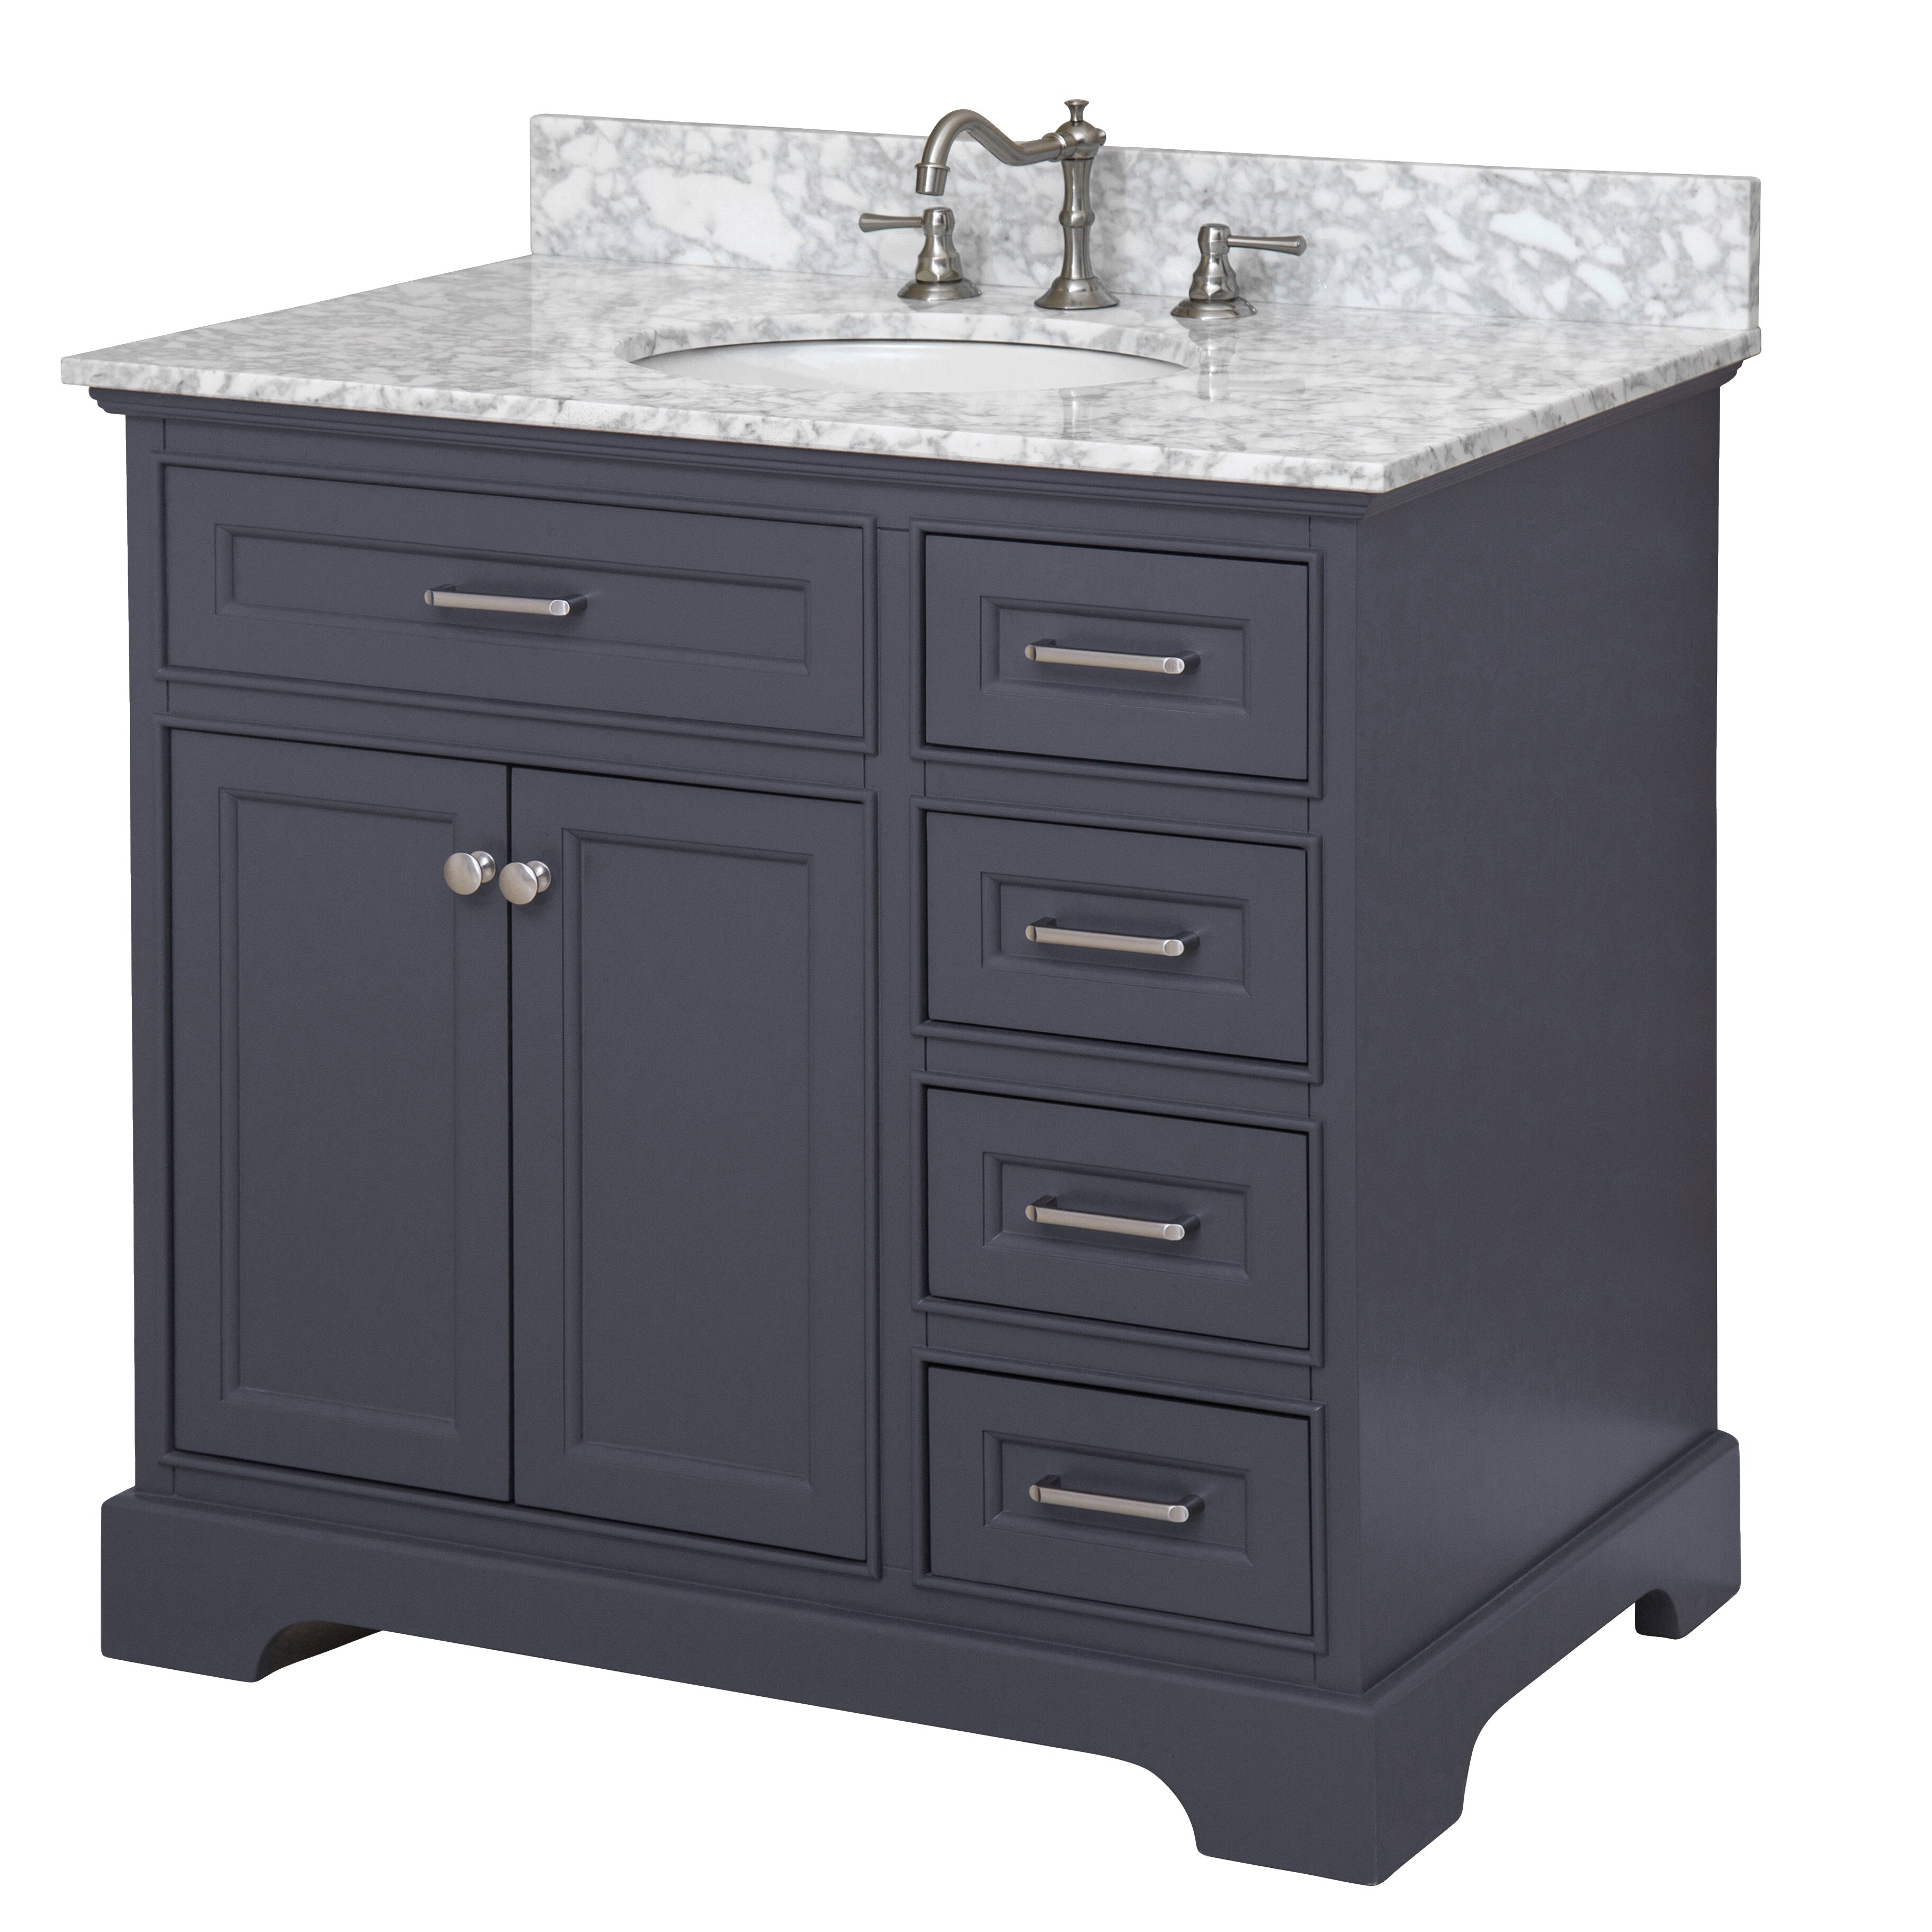 style cabinets vanities sets bath furniture for modern sale vanity bathroom contemporary online without sink